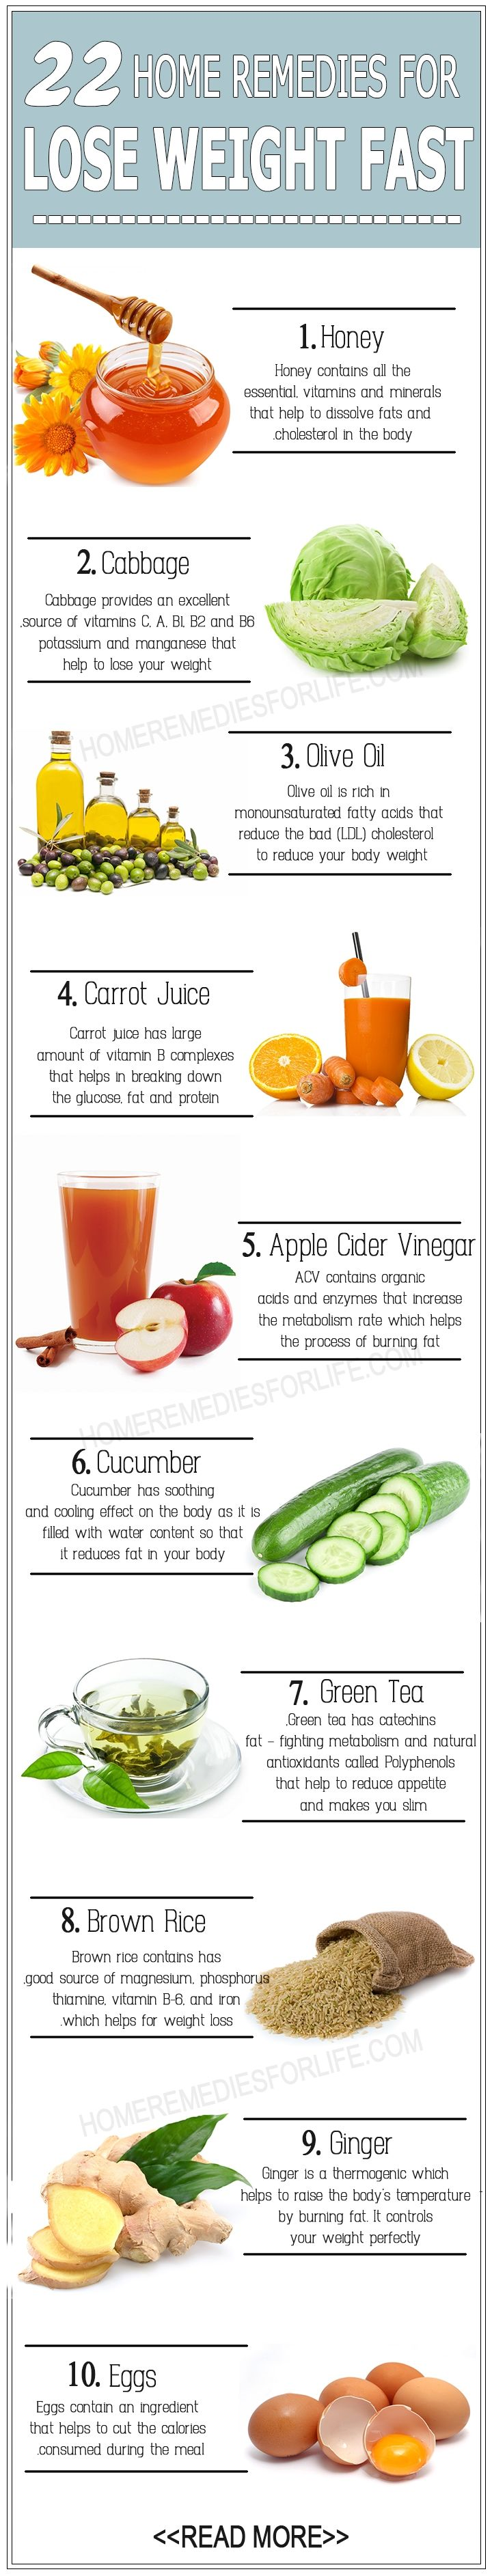 22 DIY Home Remedies for Weight Loss !! chicparlour.com #skincaretips\u2026 #weightlossbeforeandafter